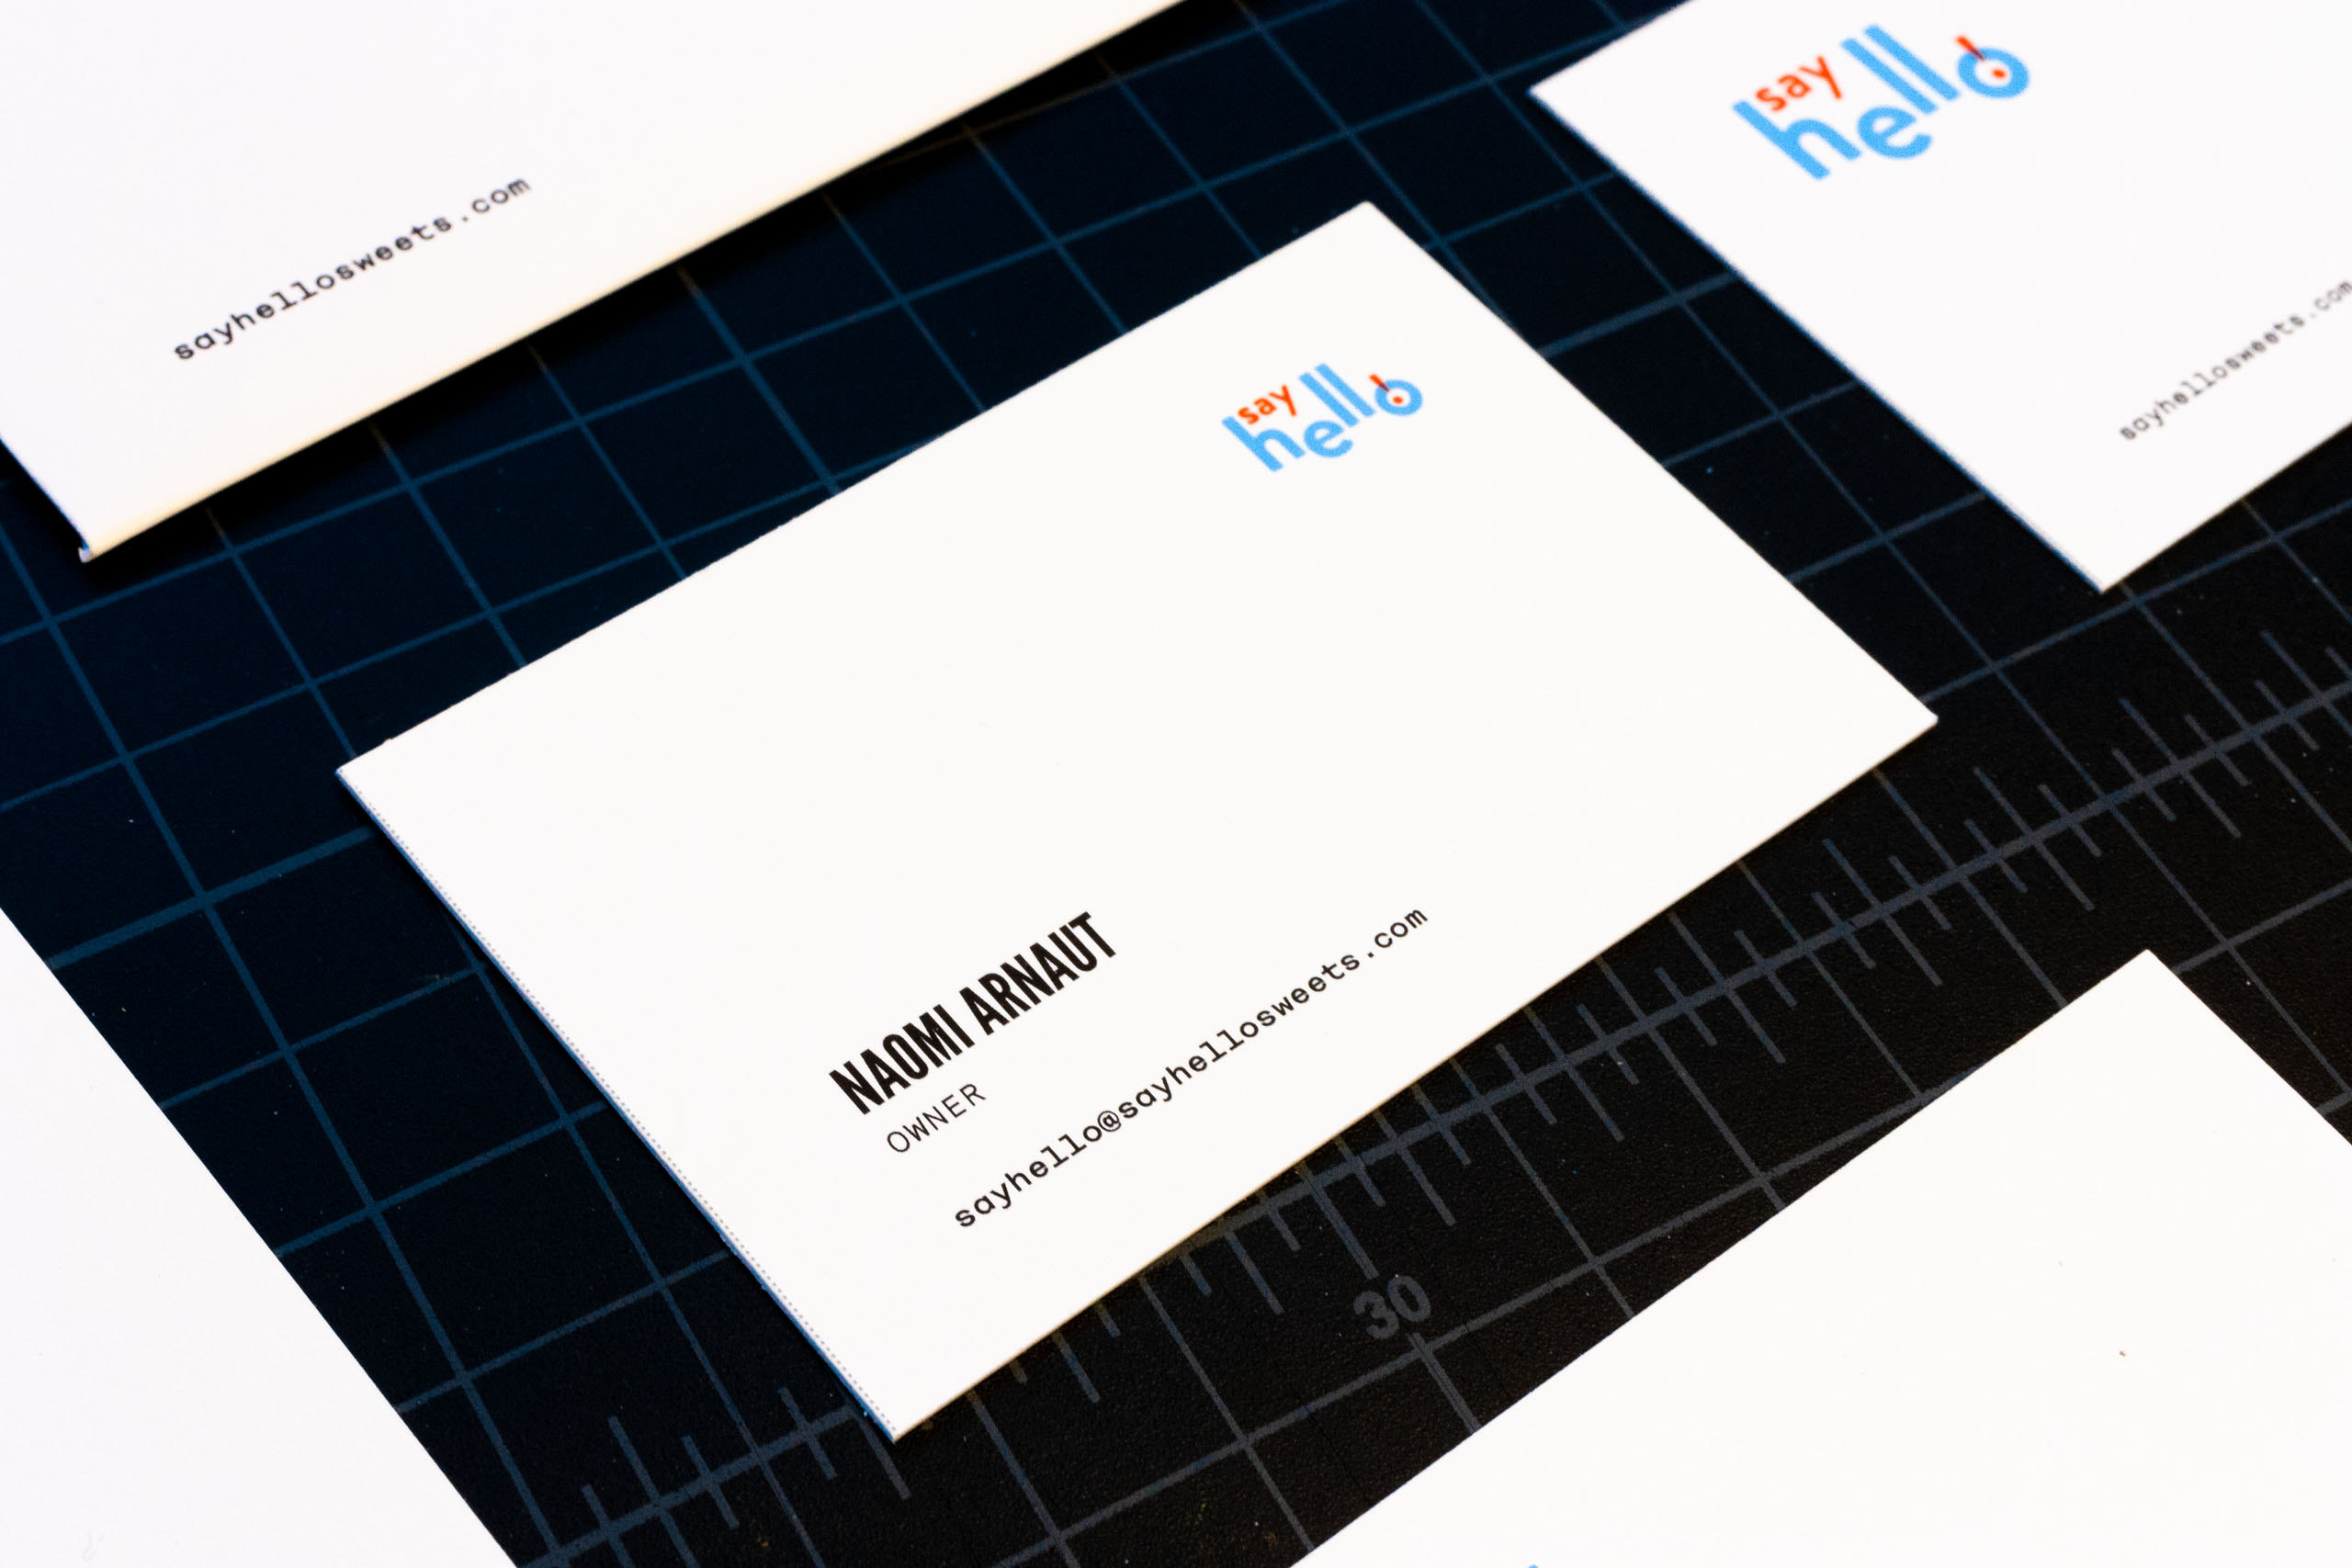 Front of the business card featuring Name, contact information and looking eye logo peering at them from the opposite corner — by Yagnyuk.